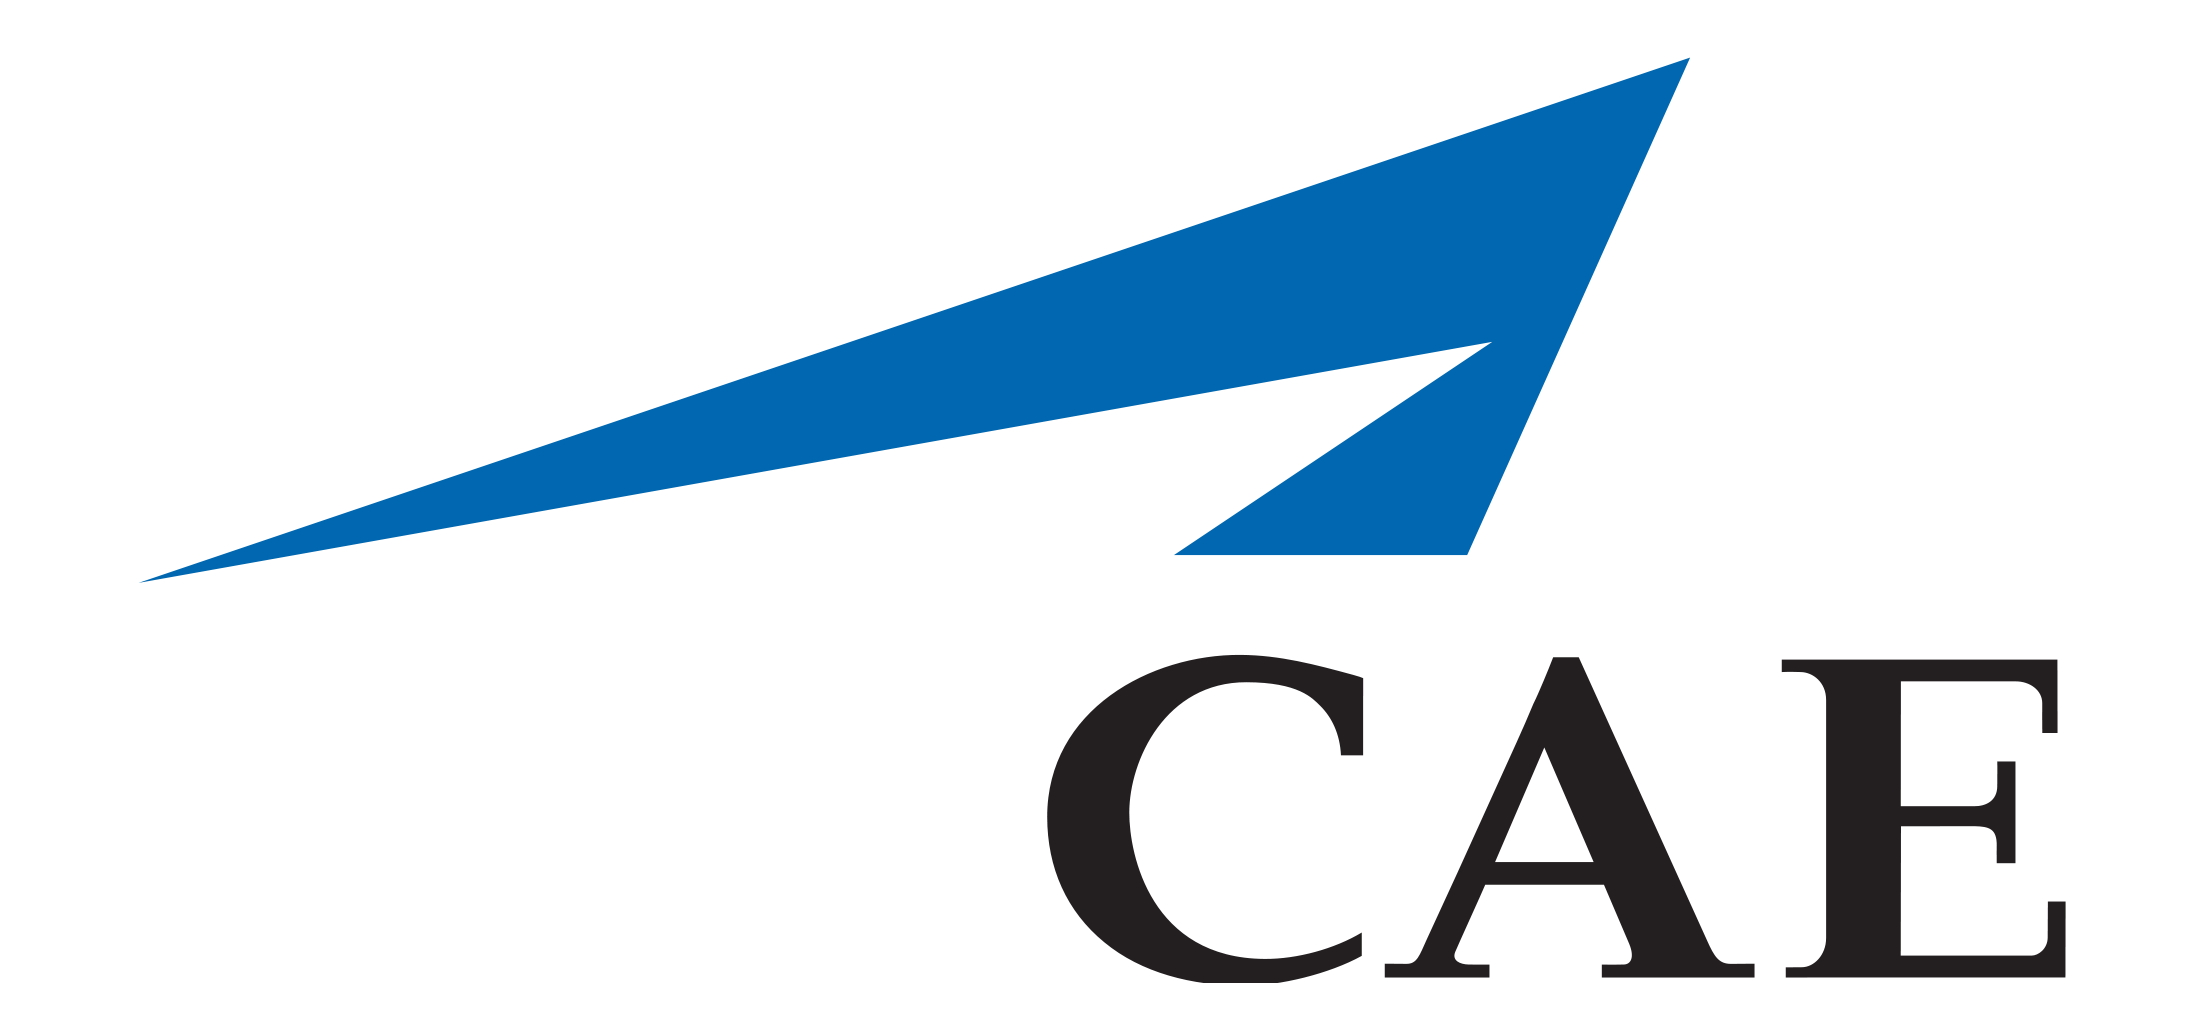 CAE Parc Aviation | Aviation Jobs & Aviation Support Experts